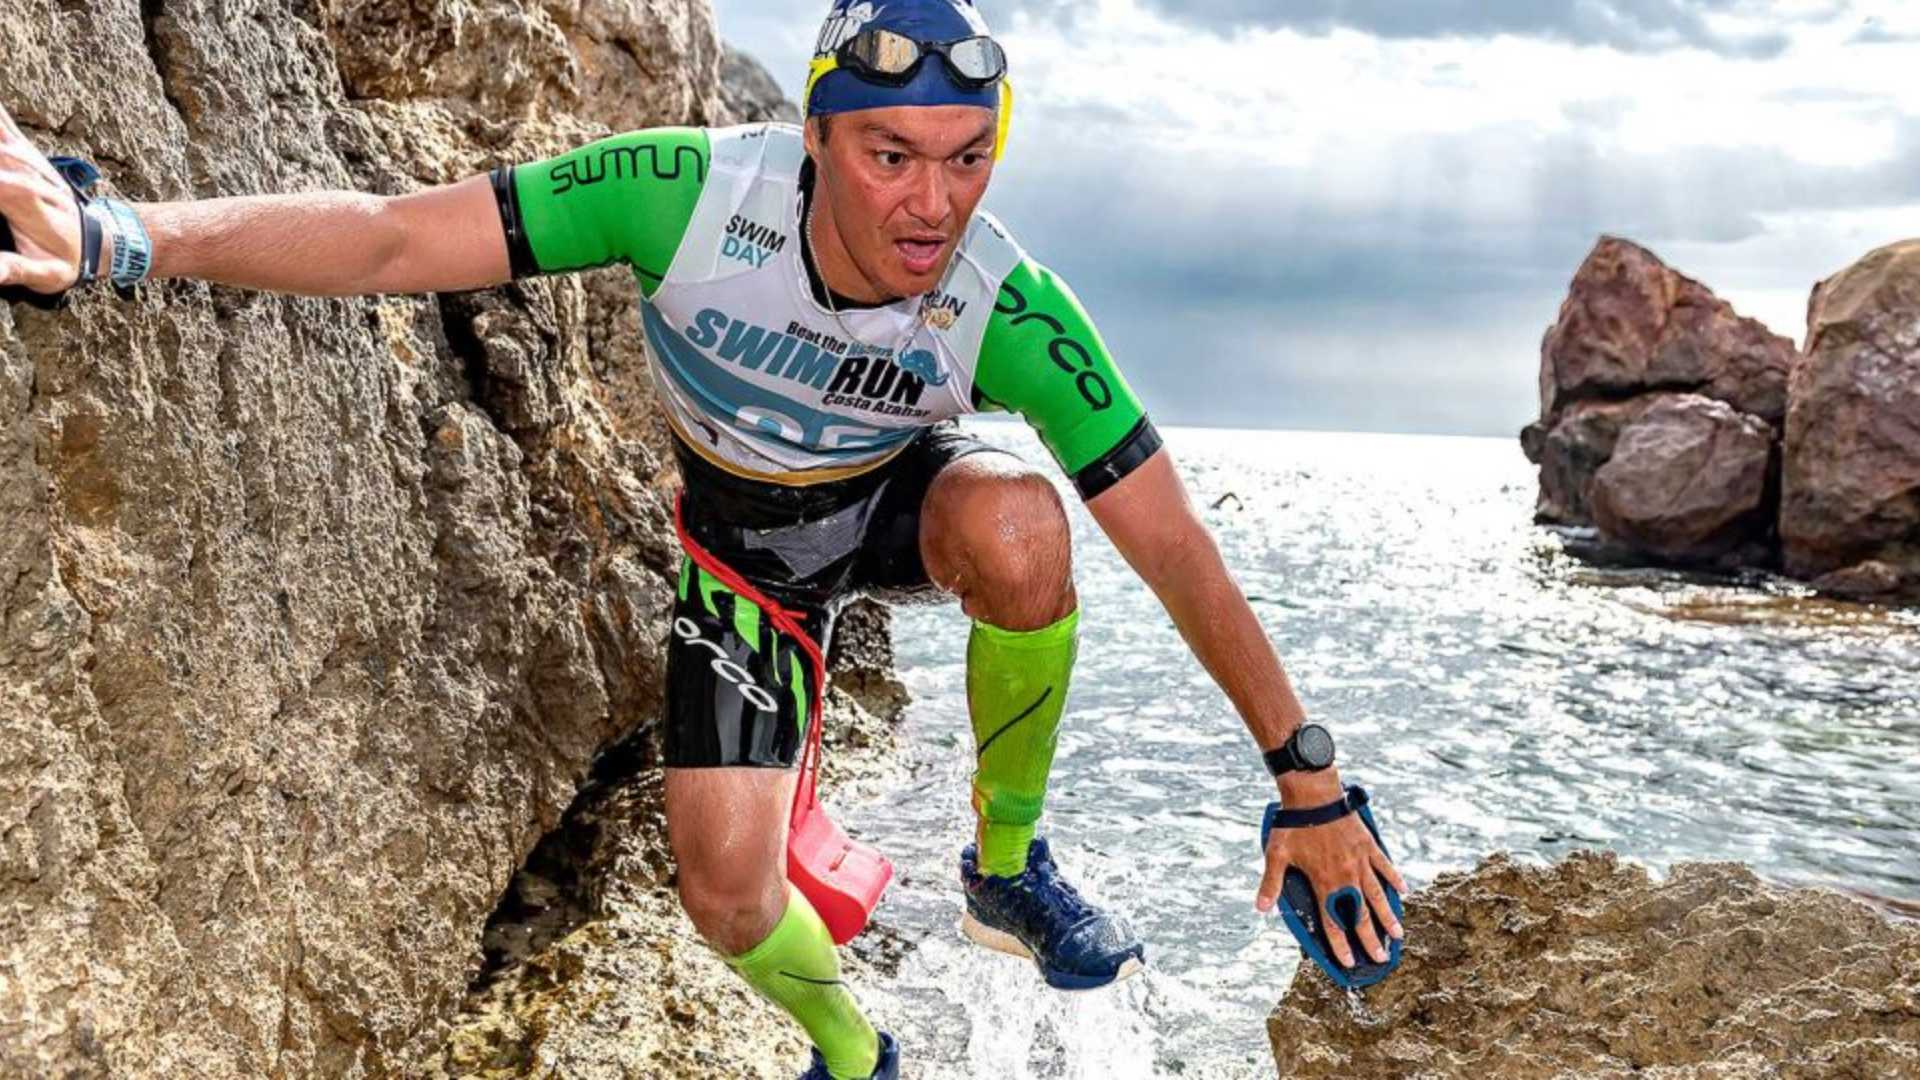 III SWIMRUN COSTA AZAHAR